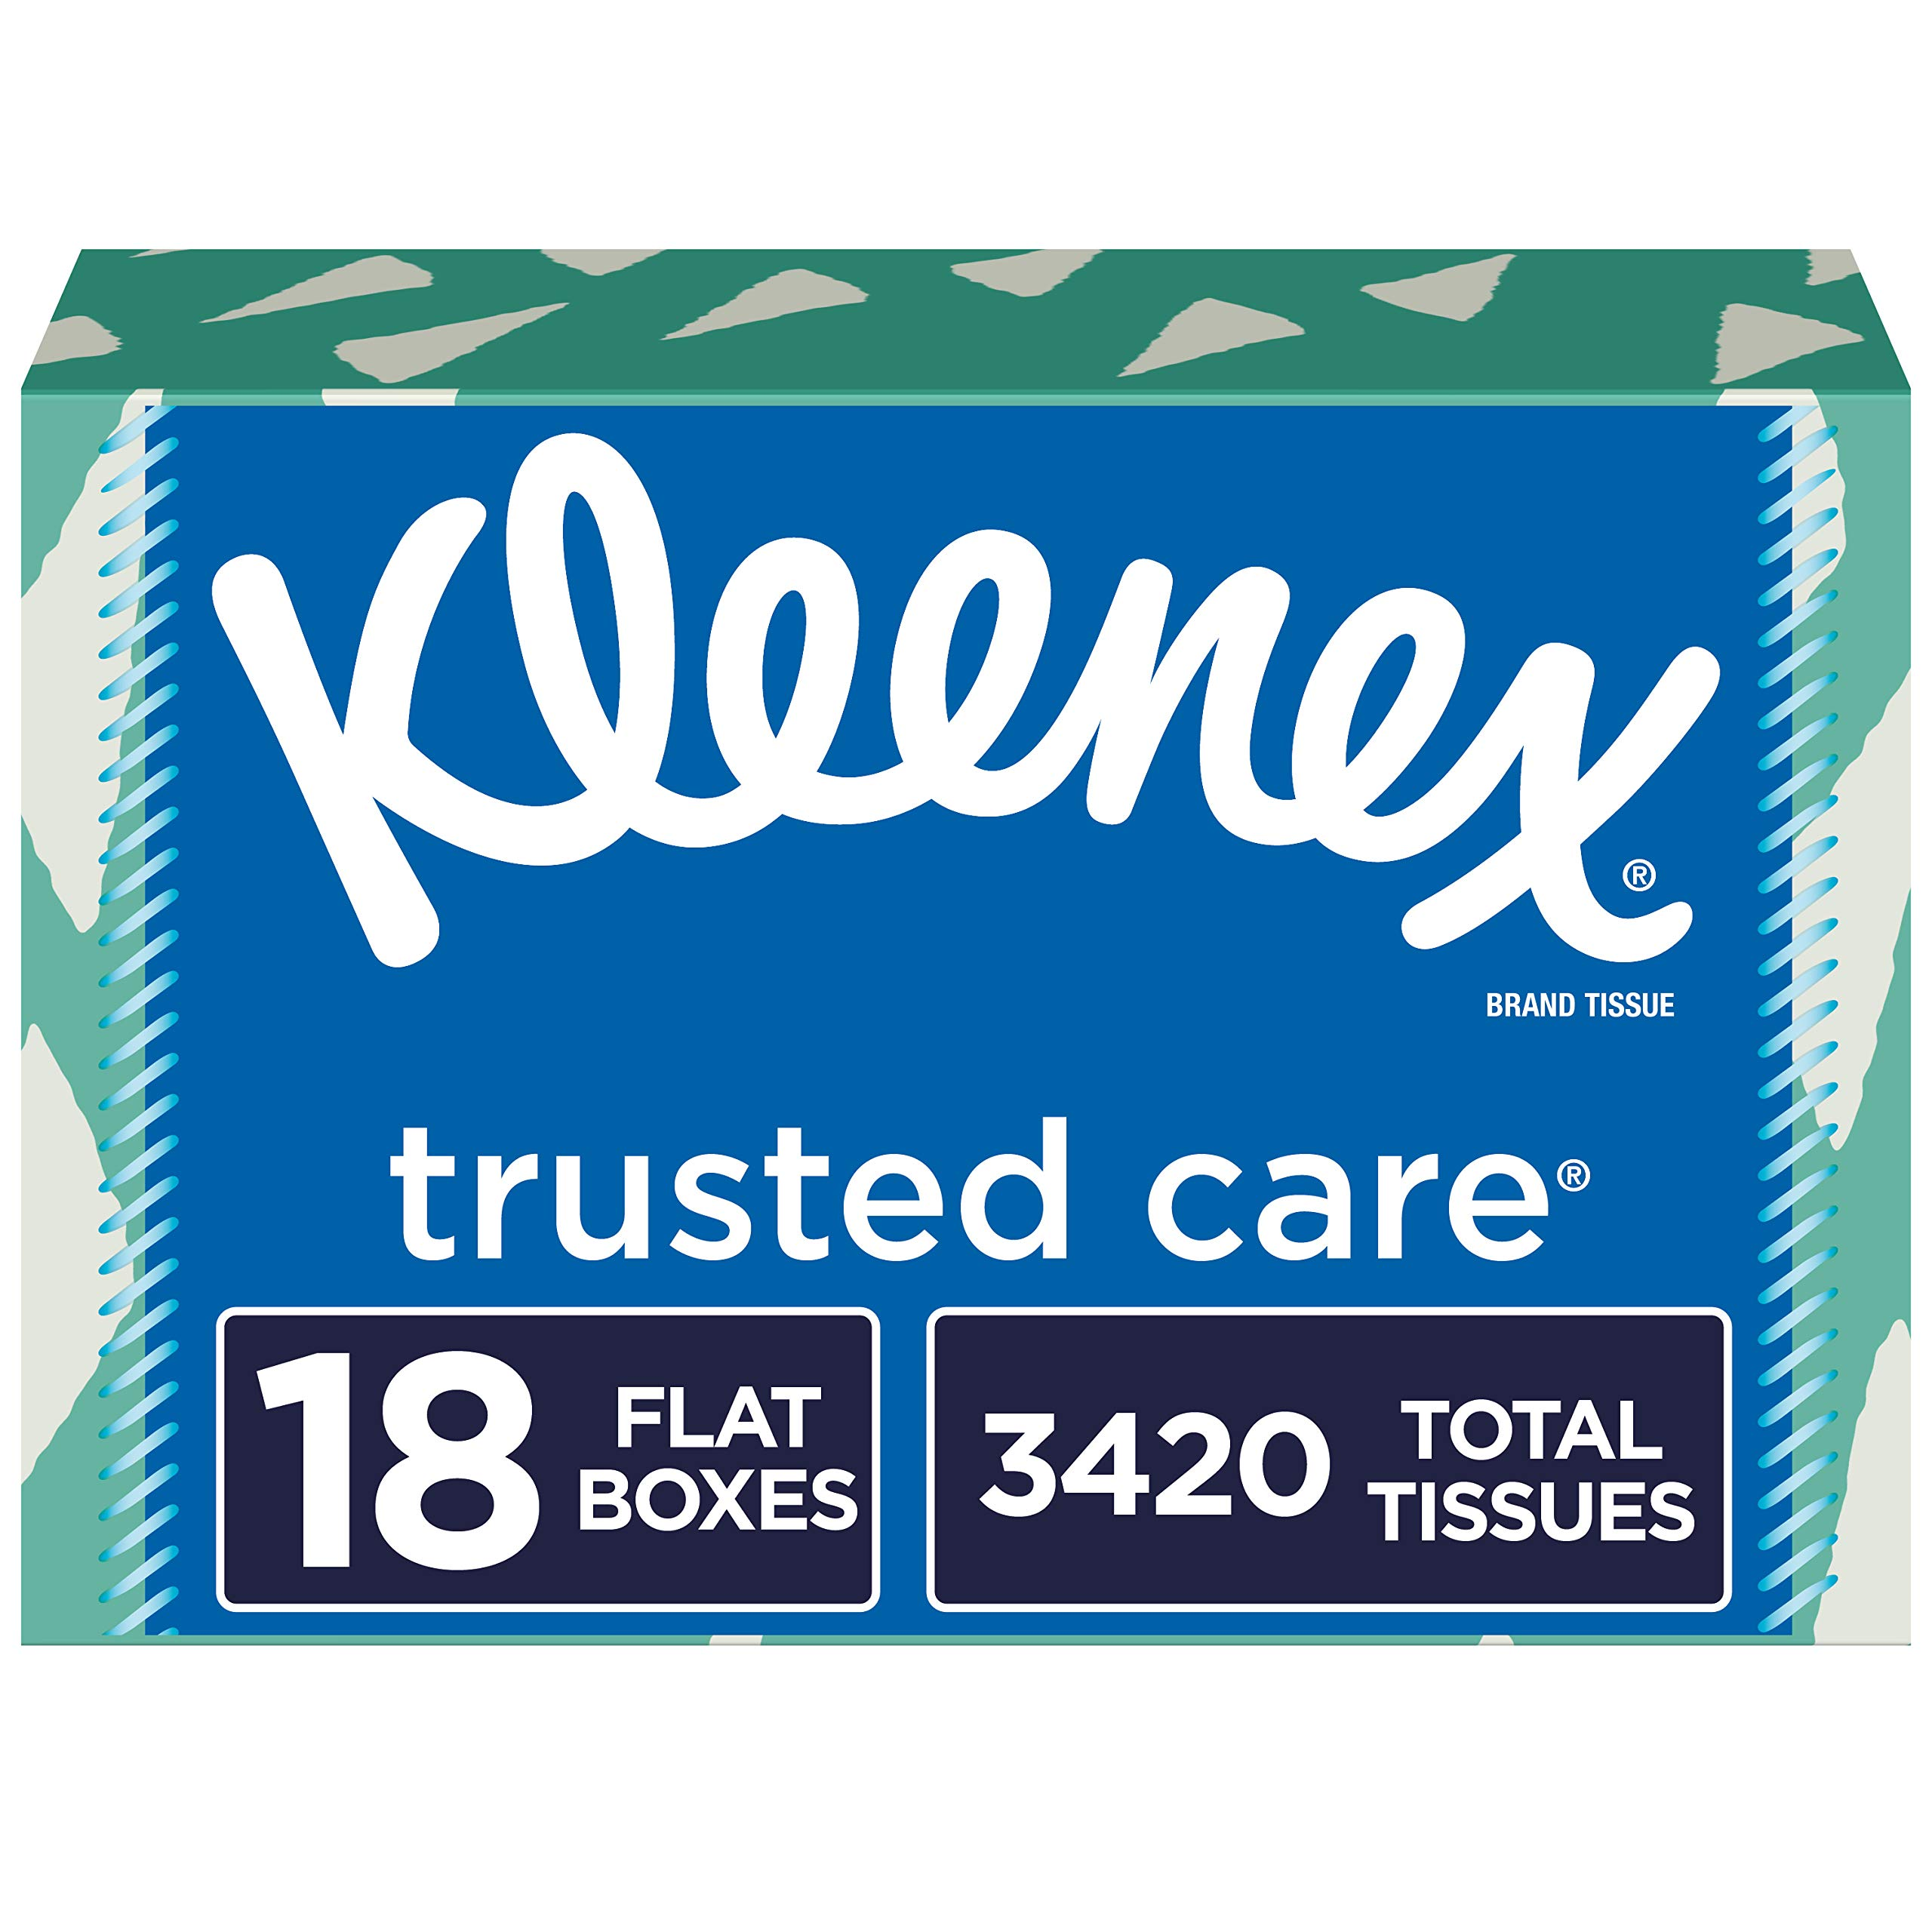 Kleenex Trusted Care Facial Tissues, 18 Flat Boxes, 190 Tissues per Box (3,420 Tissues Total)